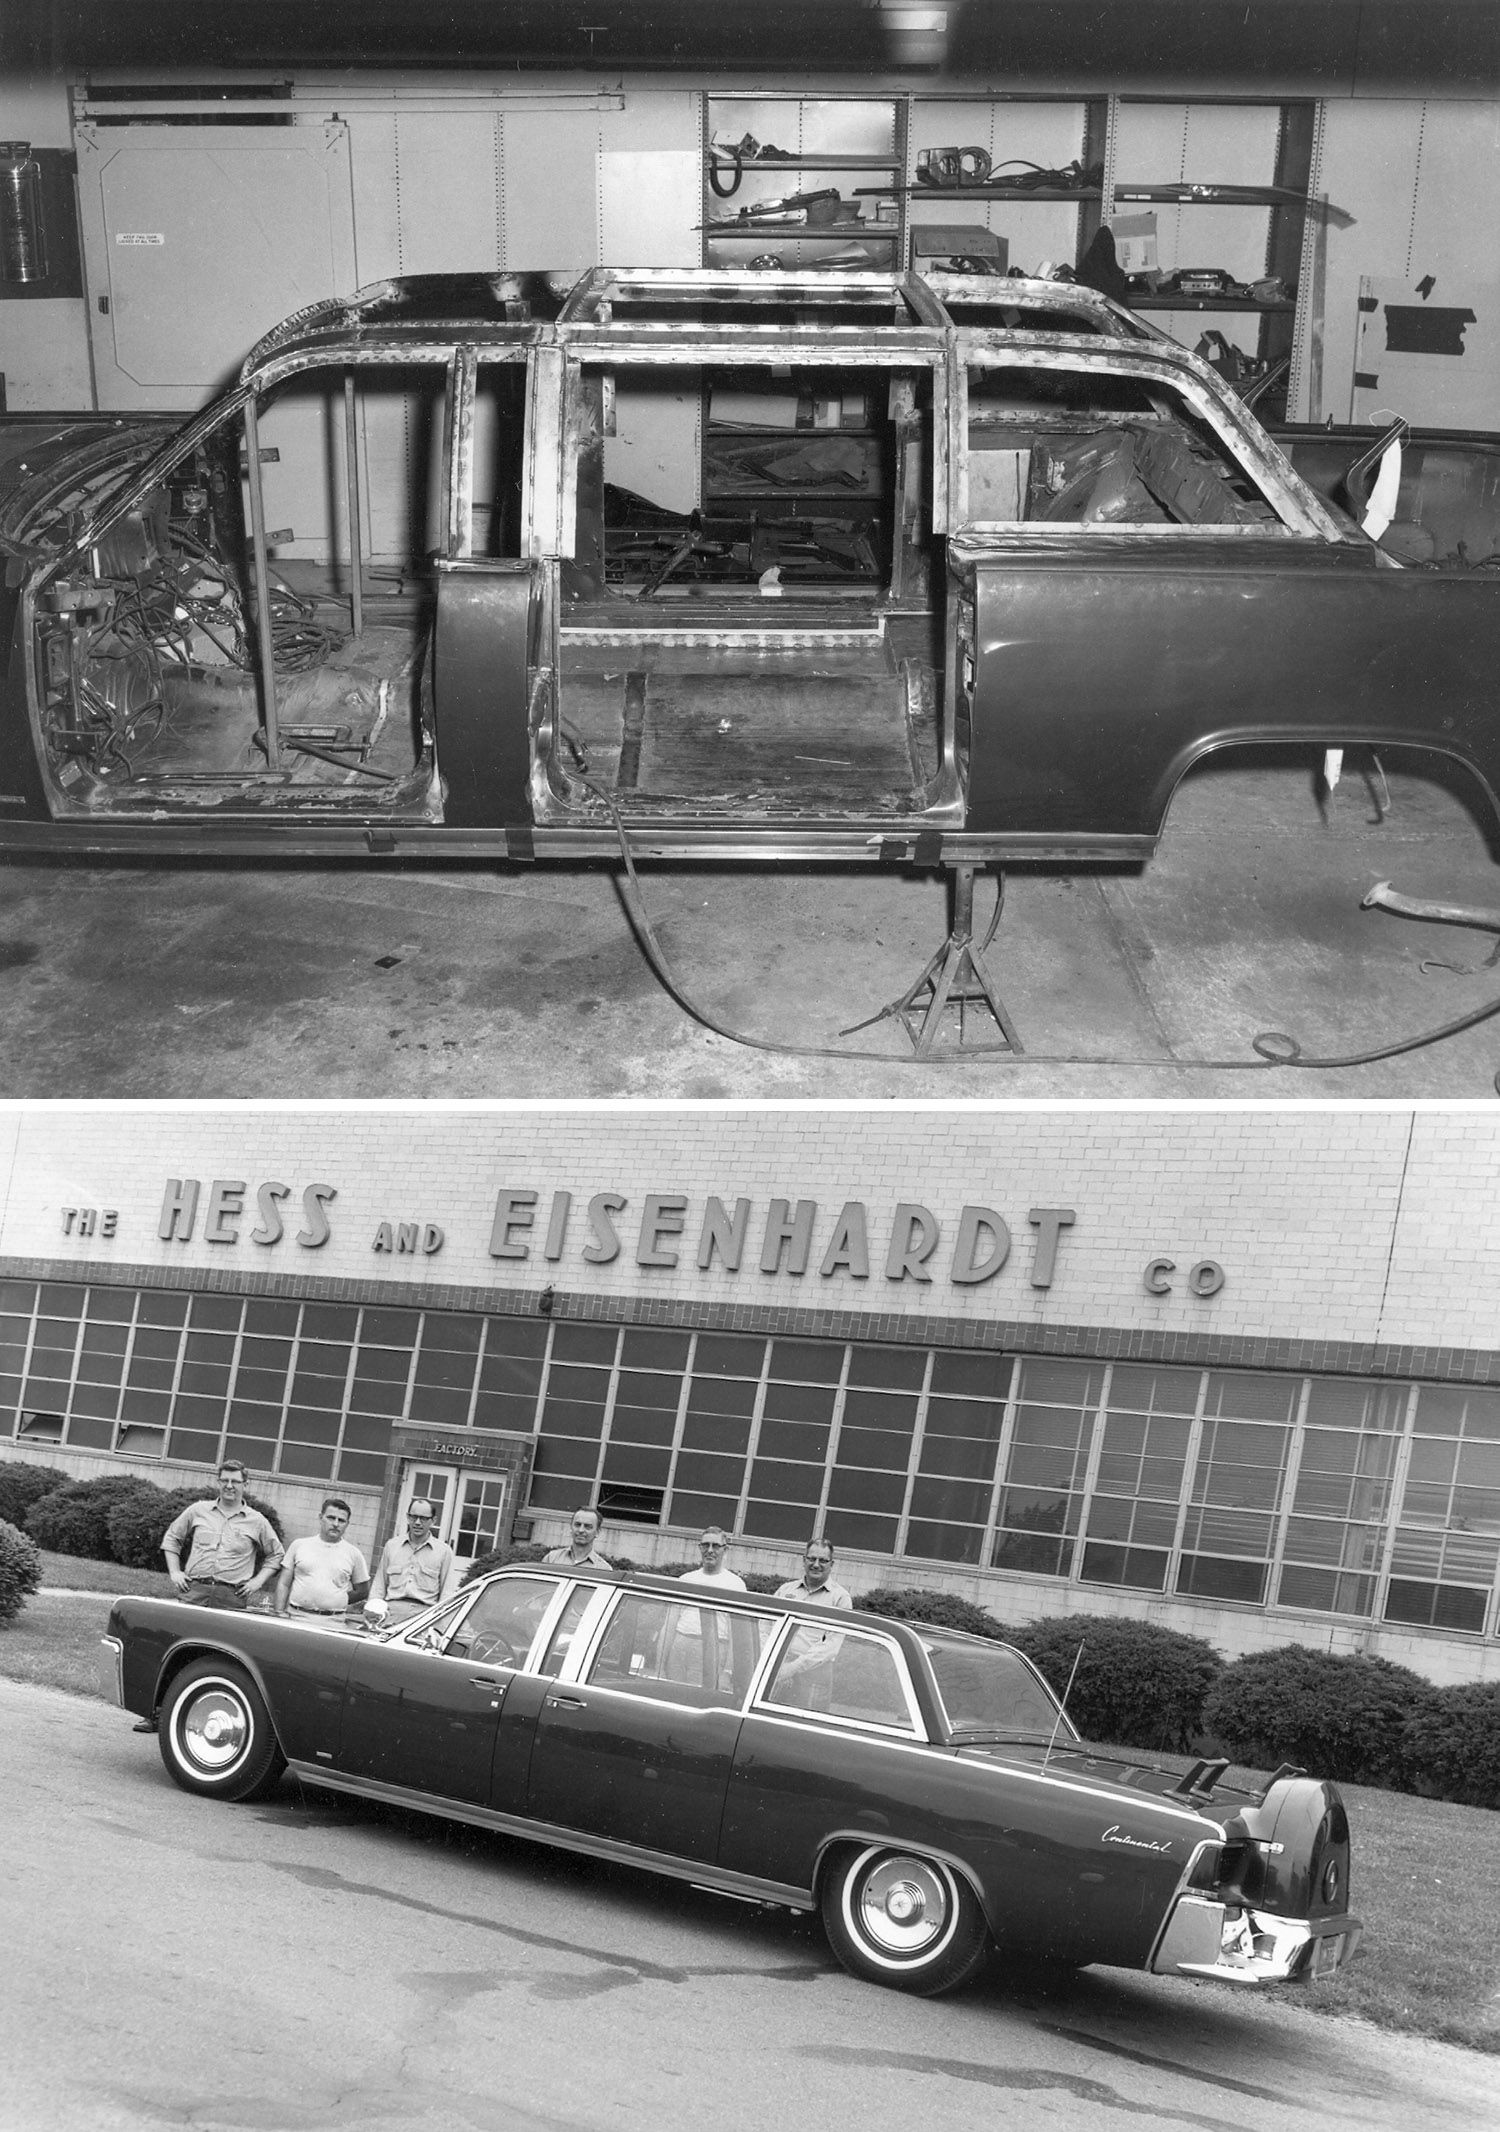 "The limousine that John F. Kennedy was assassinated in on a trip to Dallas was sent back to Ford and partner Hess & Eisenhardt to rebuild and improve its safety and design. The project started around Dec. 1963 and was dubbed the ""Quick Fix."" These photos show the process and the rebuilt car on display in front of Hess & Eisenhardt's headquarters in Cincinnati, Ohio before it was sent back to the White House."